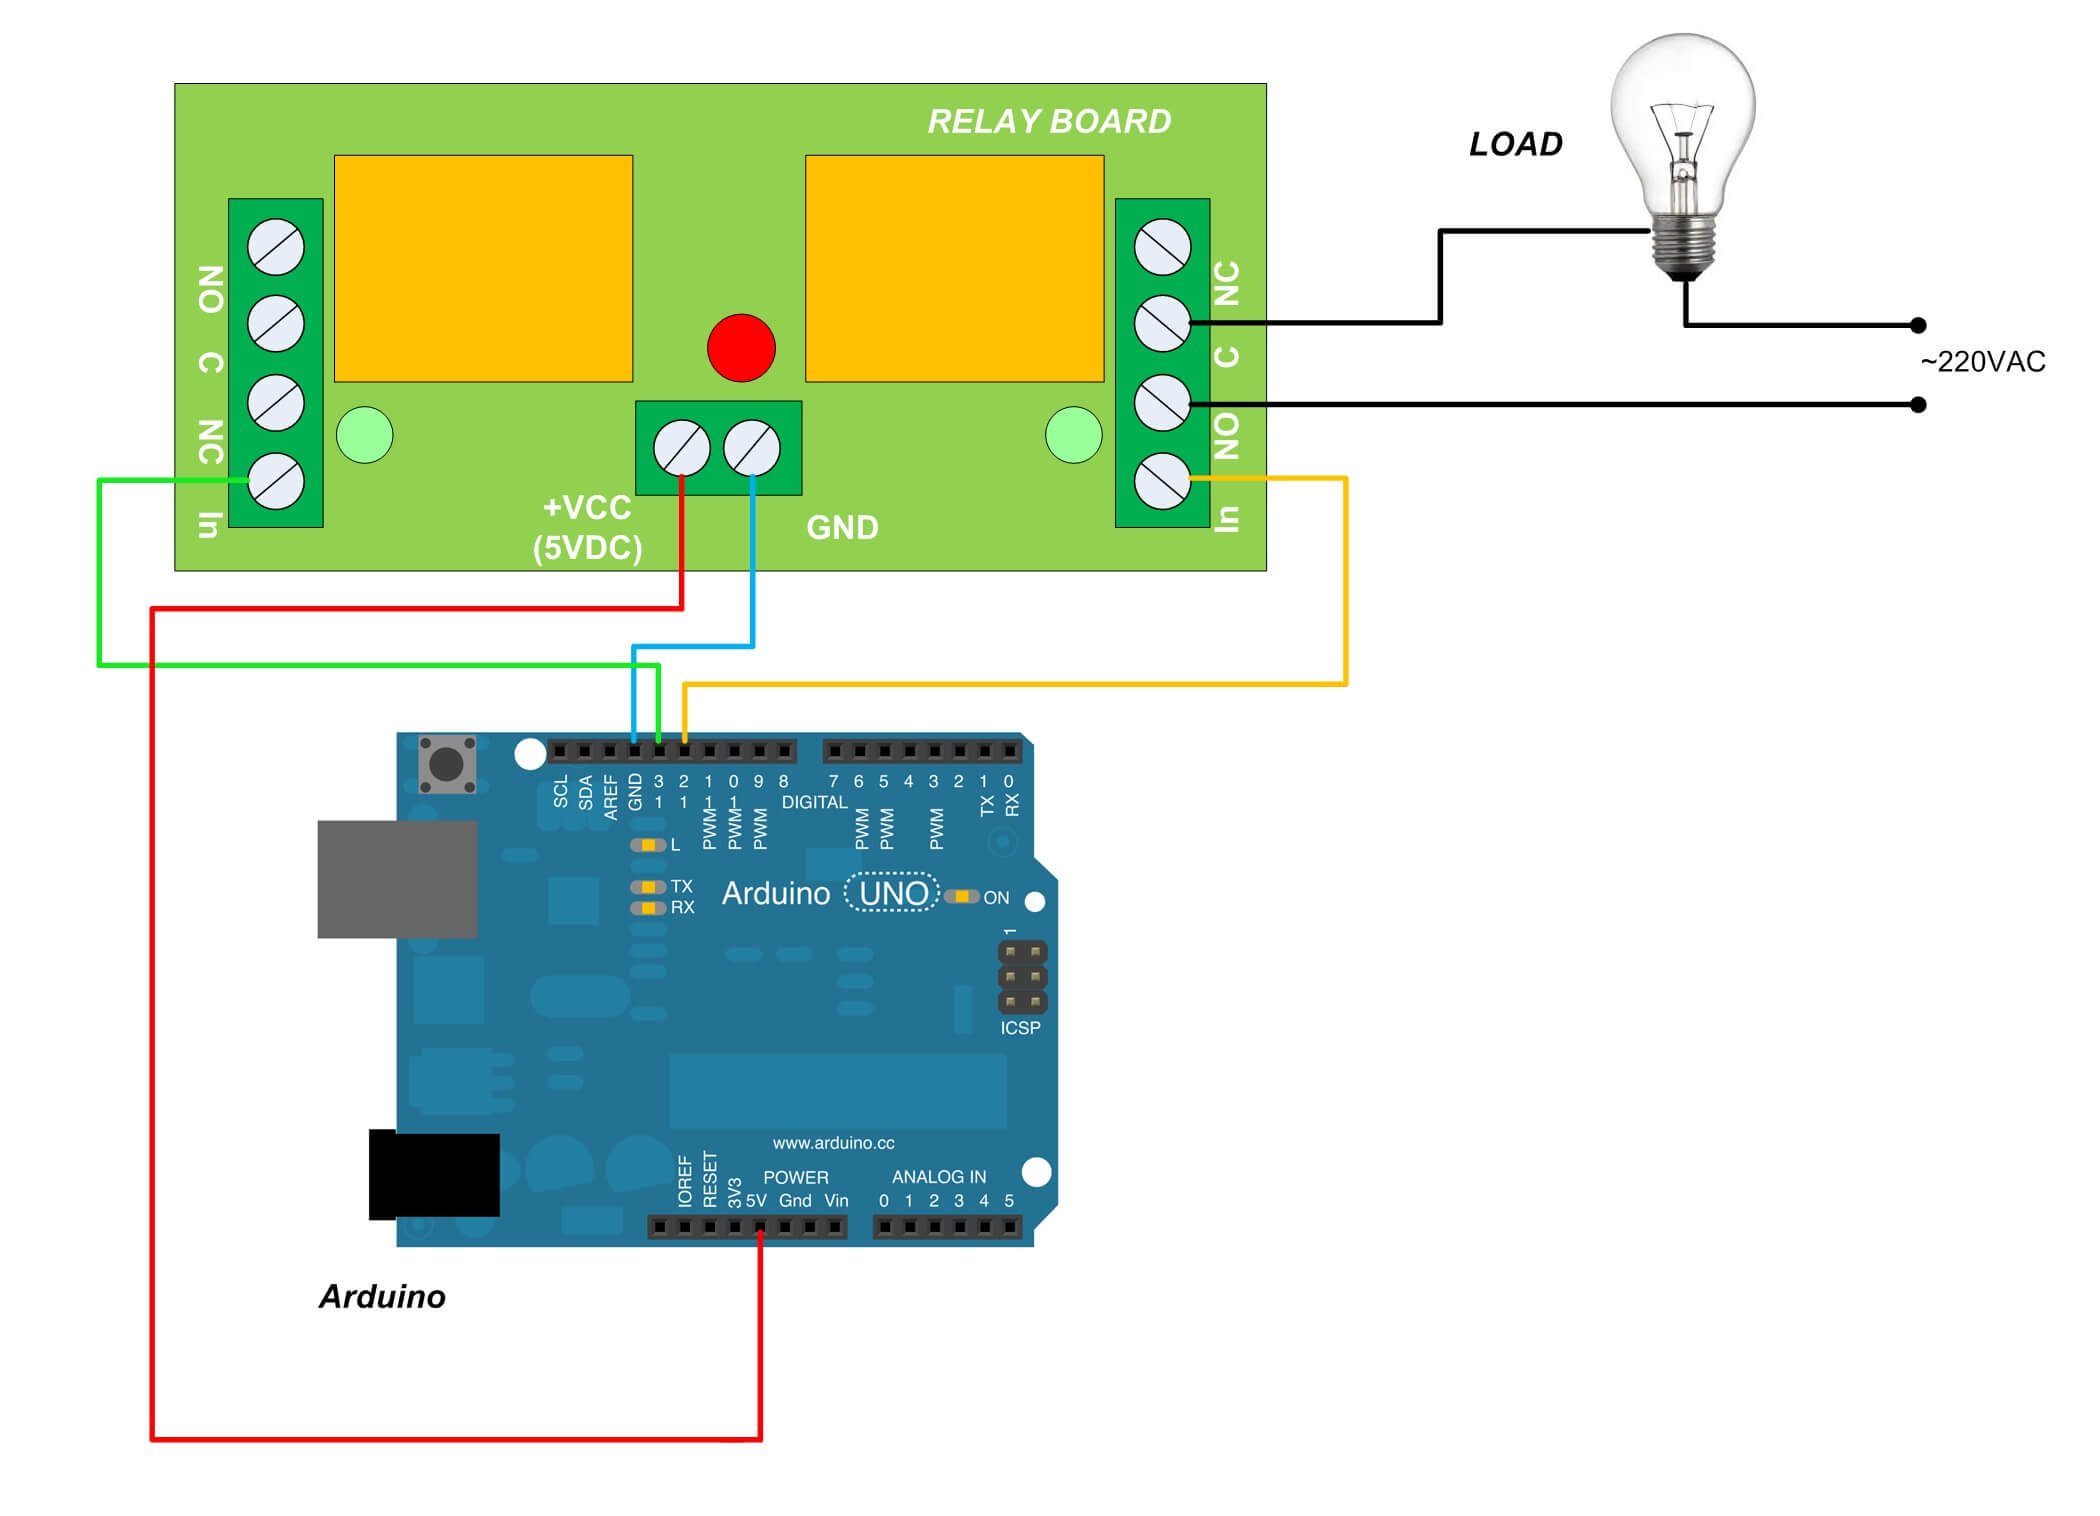 8 Relay Board For Your Pic Avr Arm 8051 Arduino Or Raspberry Pi Electrical Dummies Connected To